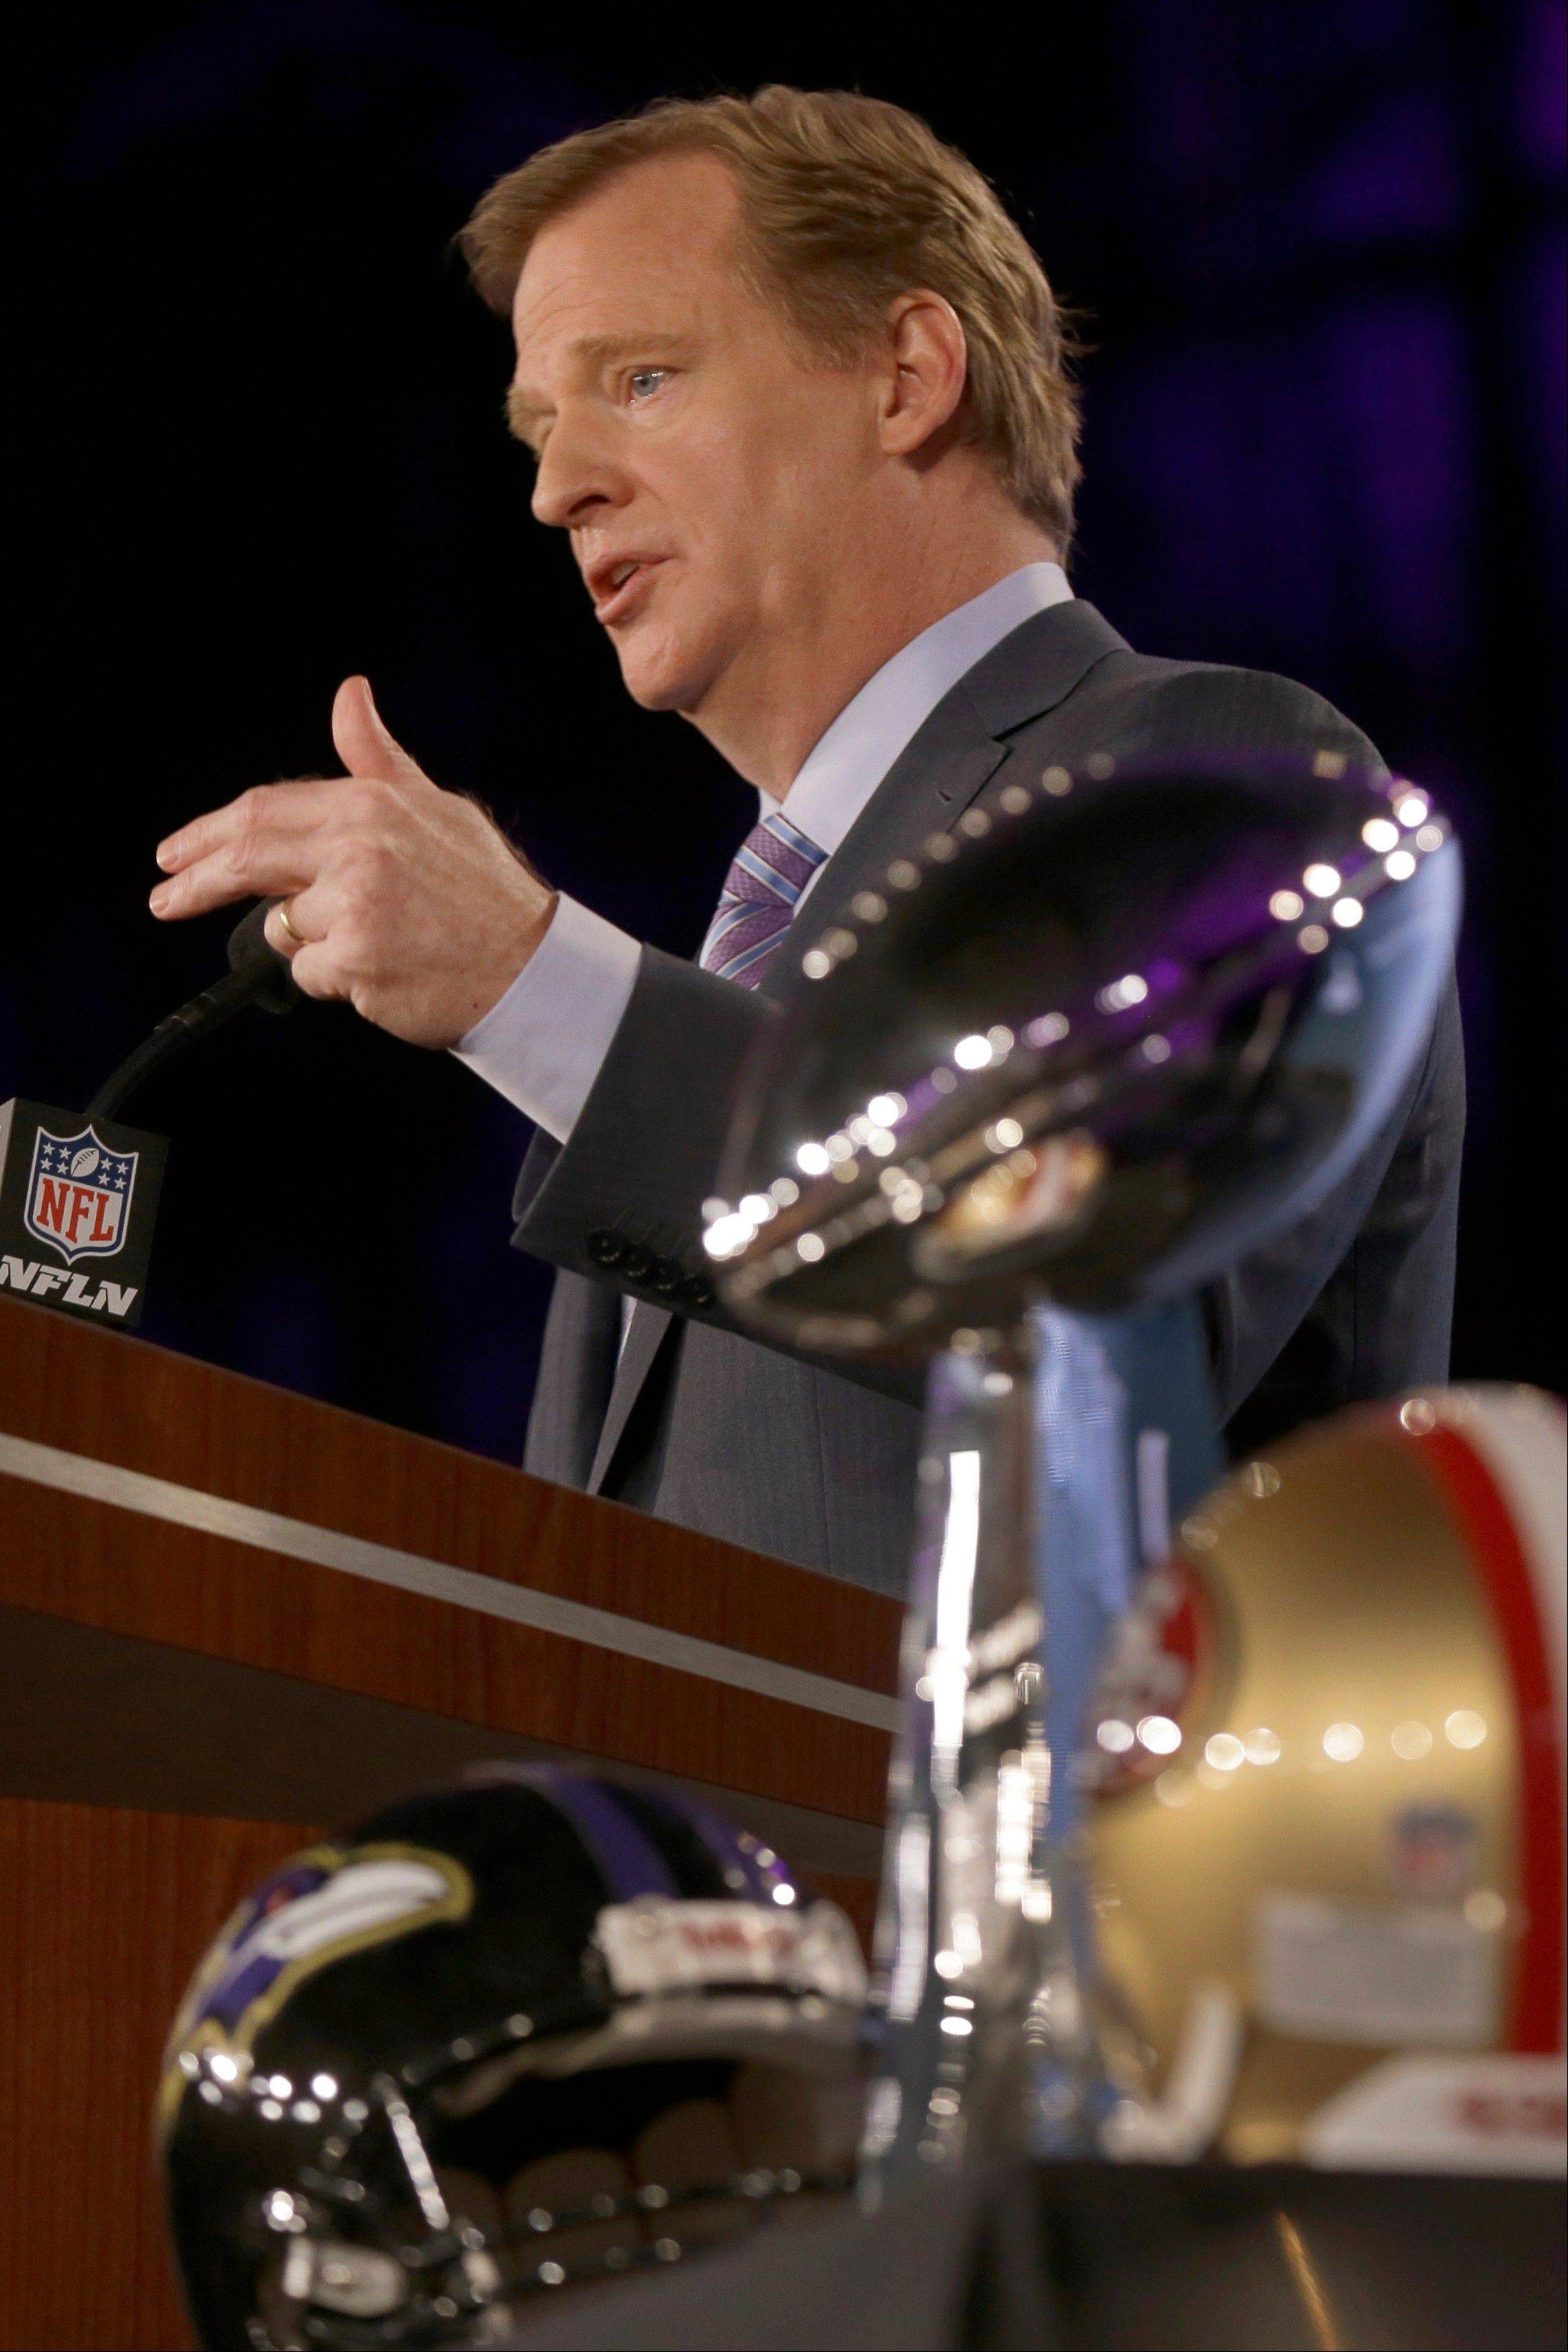 NFL Commissioner Roger Goodell answers questions during an NFL Super Bowl XLVII football game news conference at the New Orleans Convention Center, Friday, Feb. 1, 2013. in New Orleans.